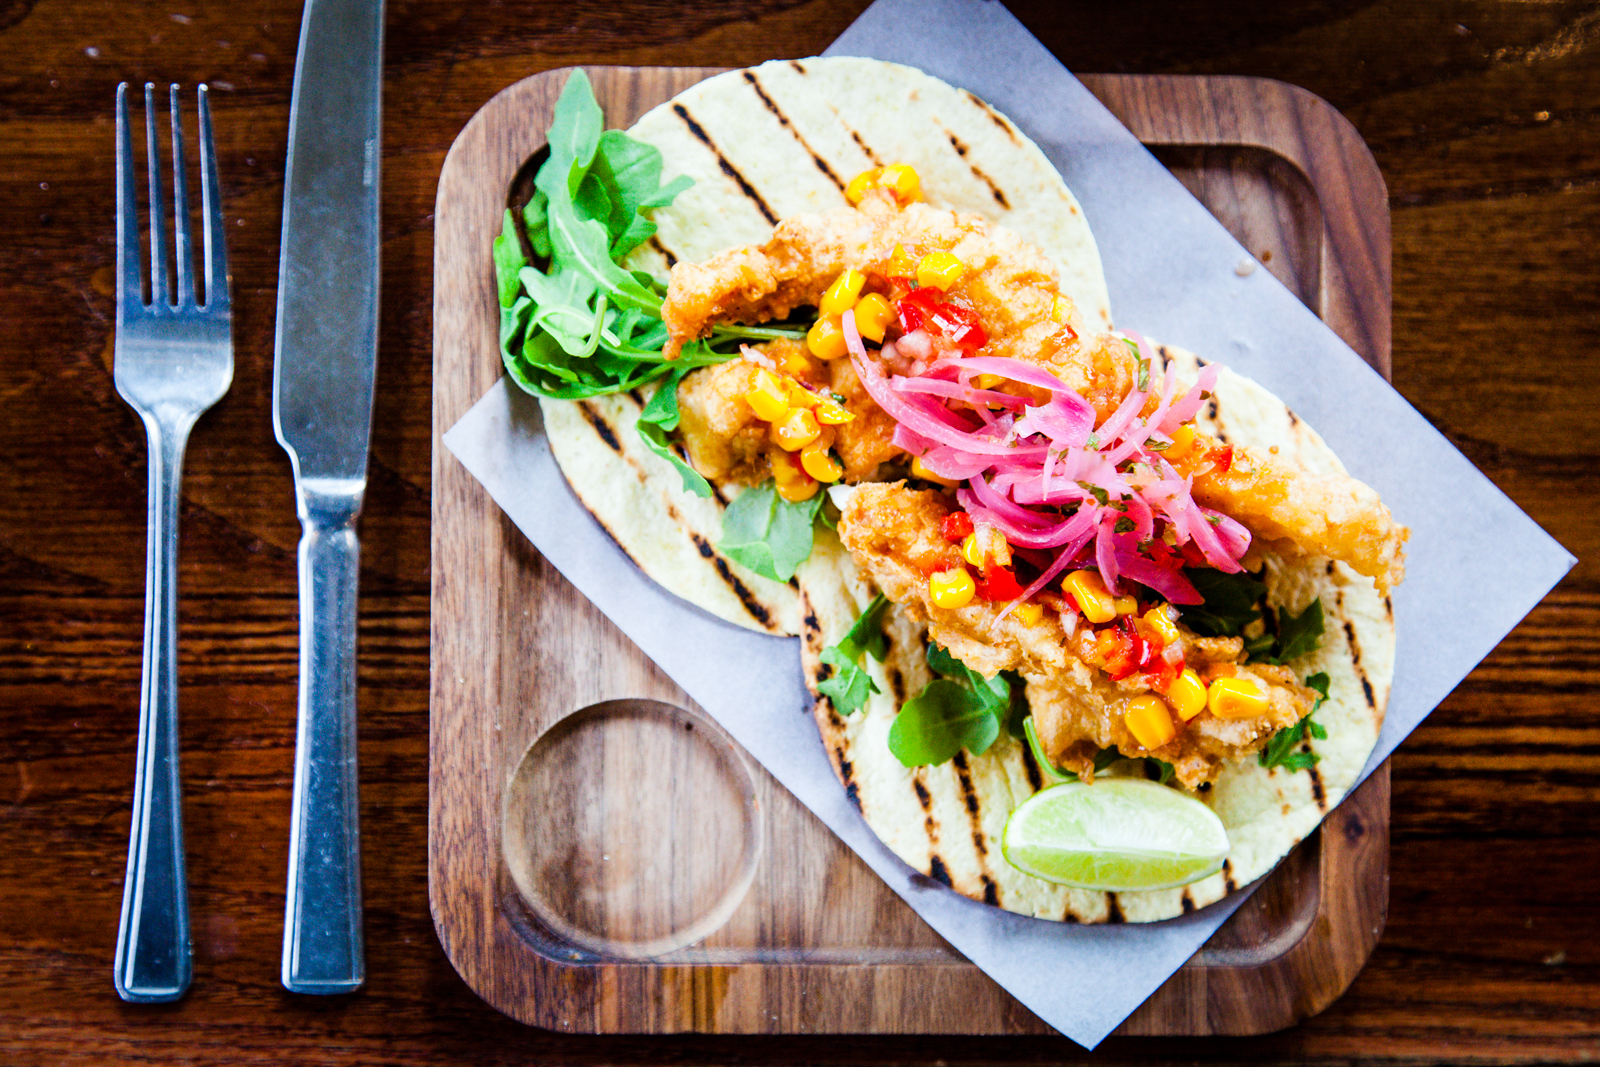 Reserve a table at Las Iguanas - Cambridge